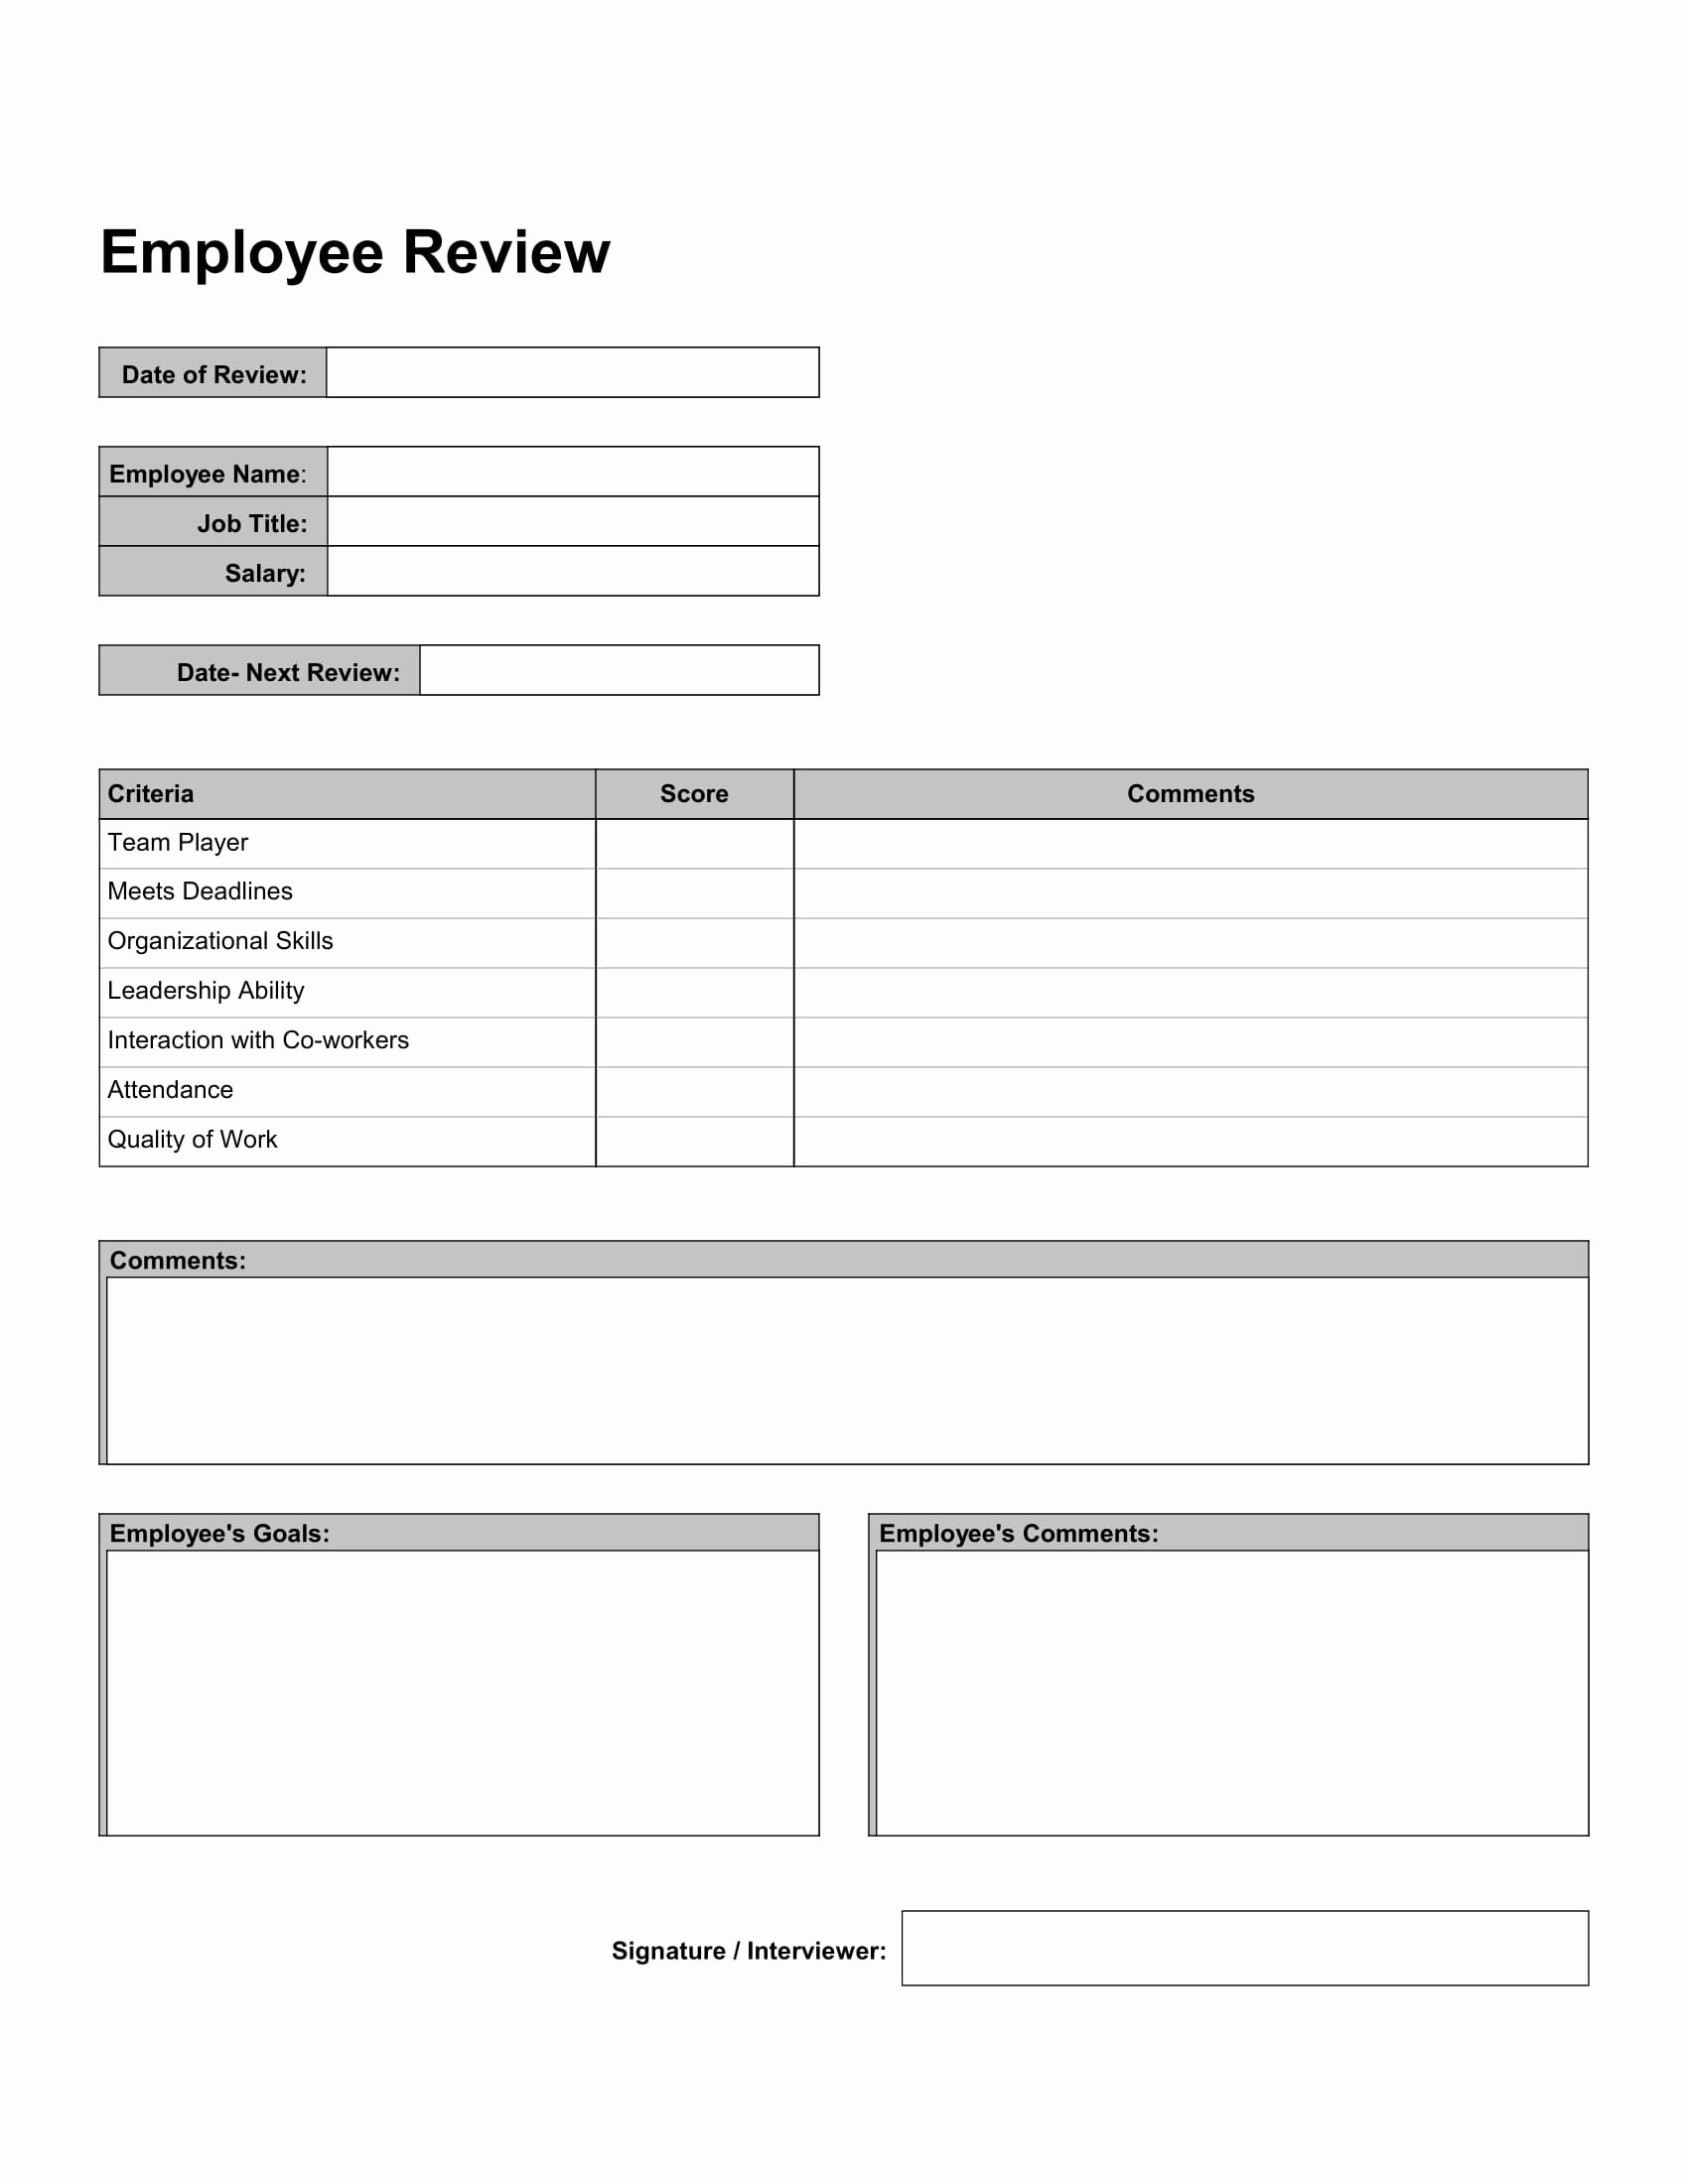 Performance Appraisal form Template Awesome 9 Employee Self Reviews forms Free Word Pdf format